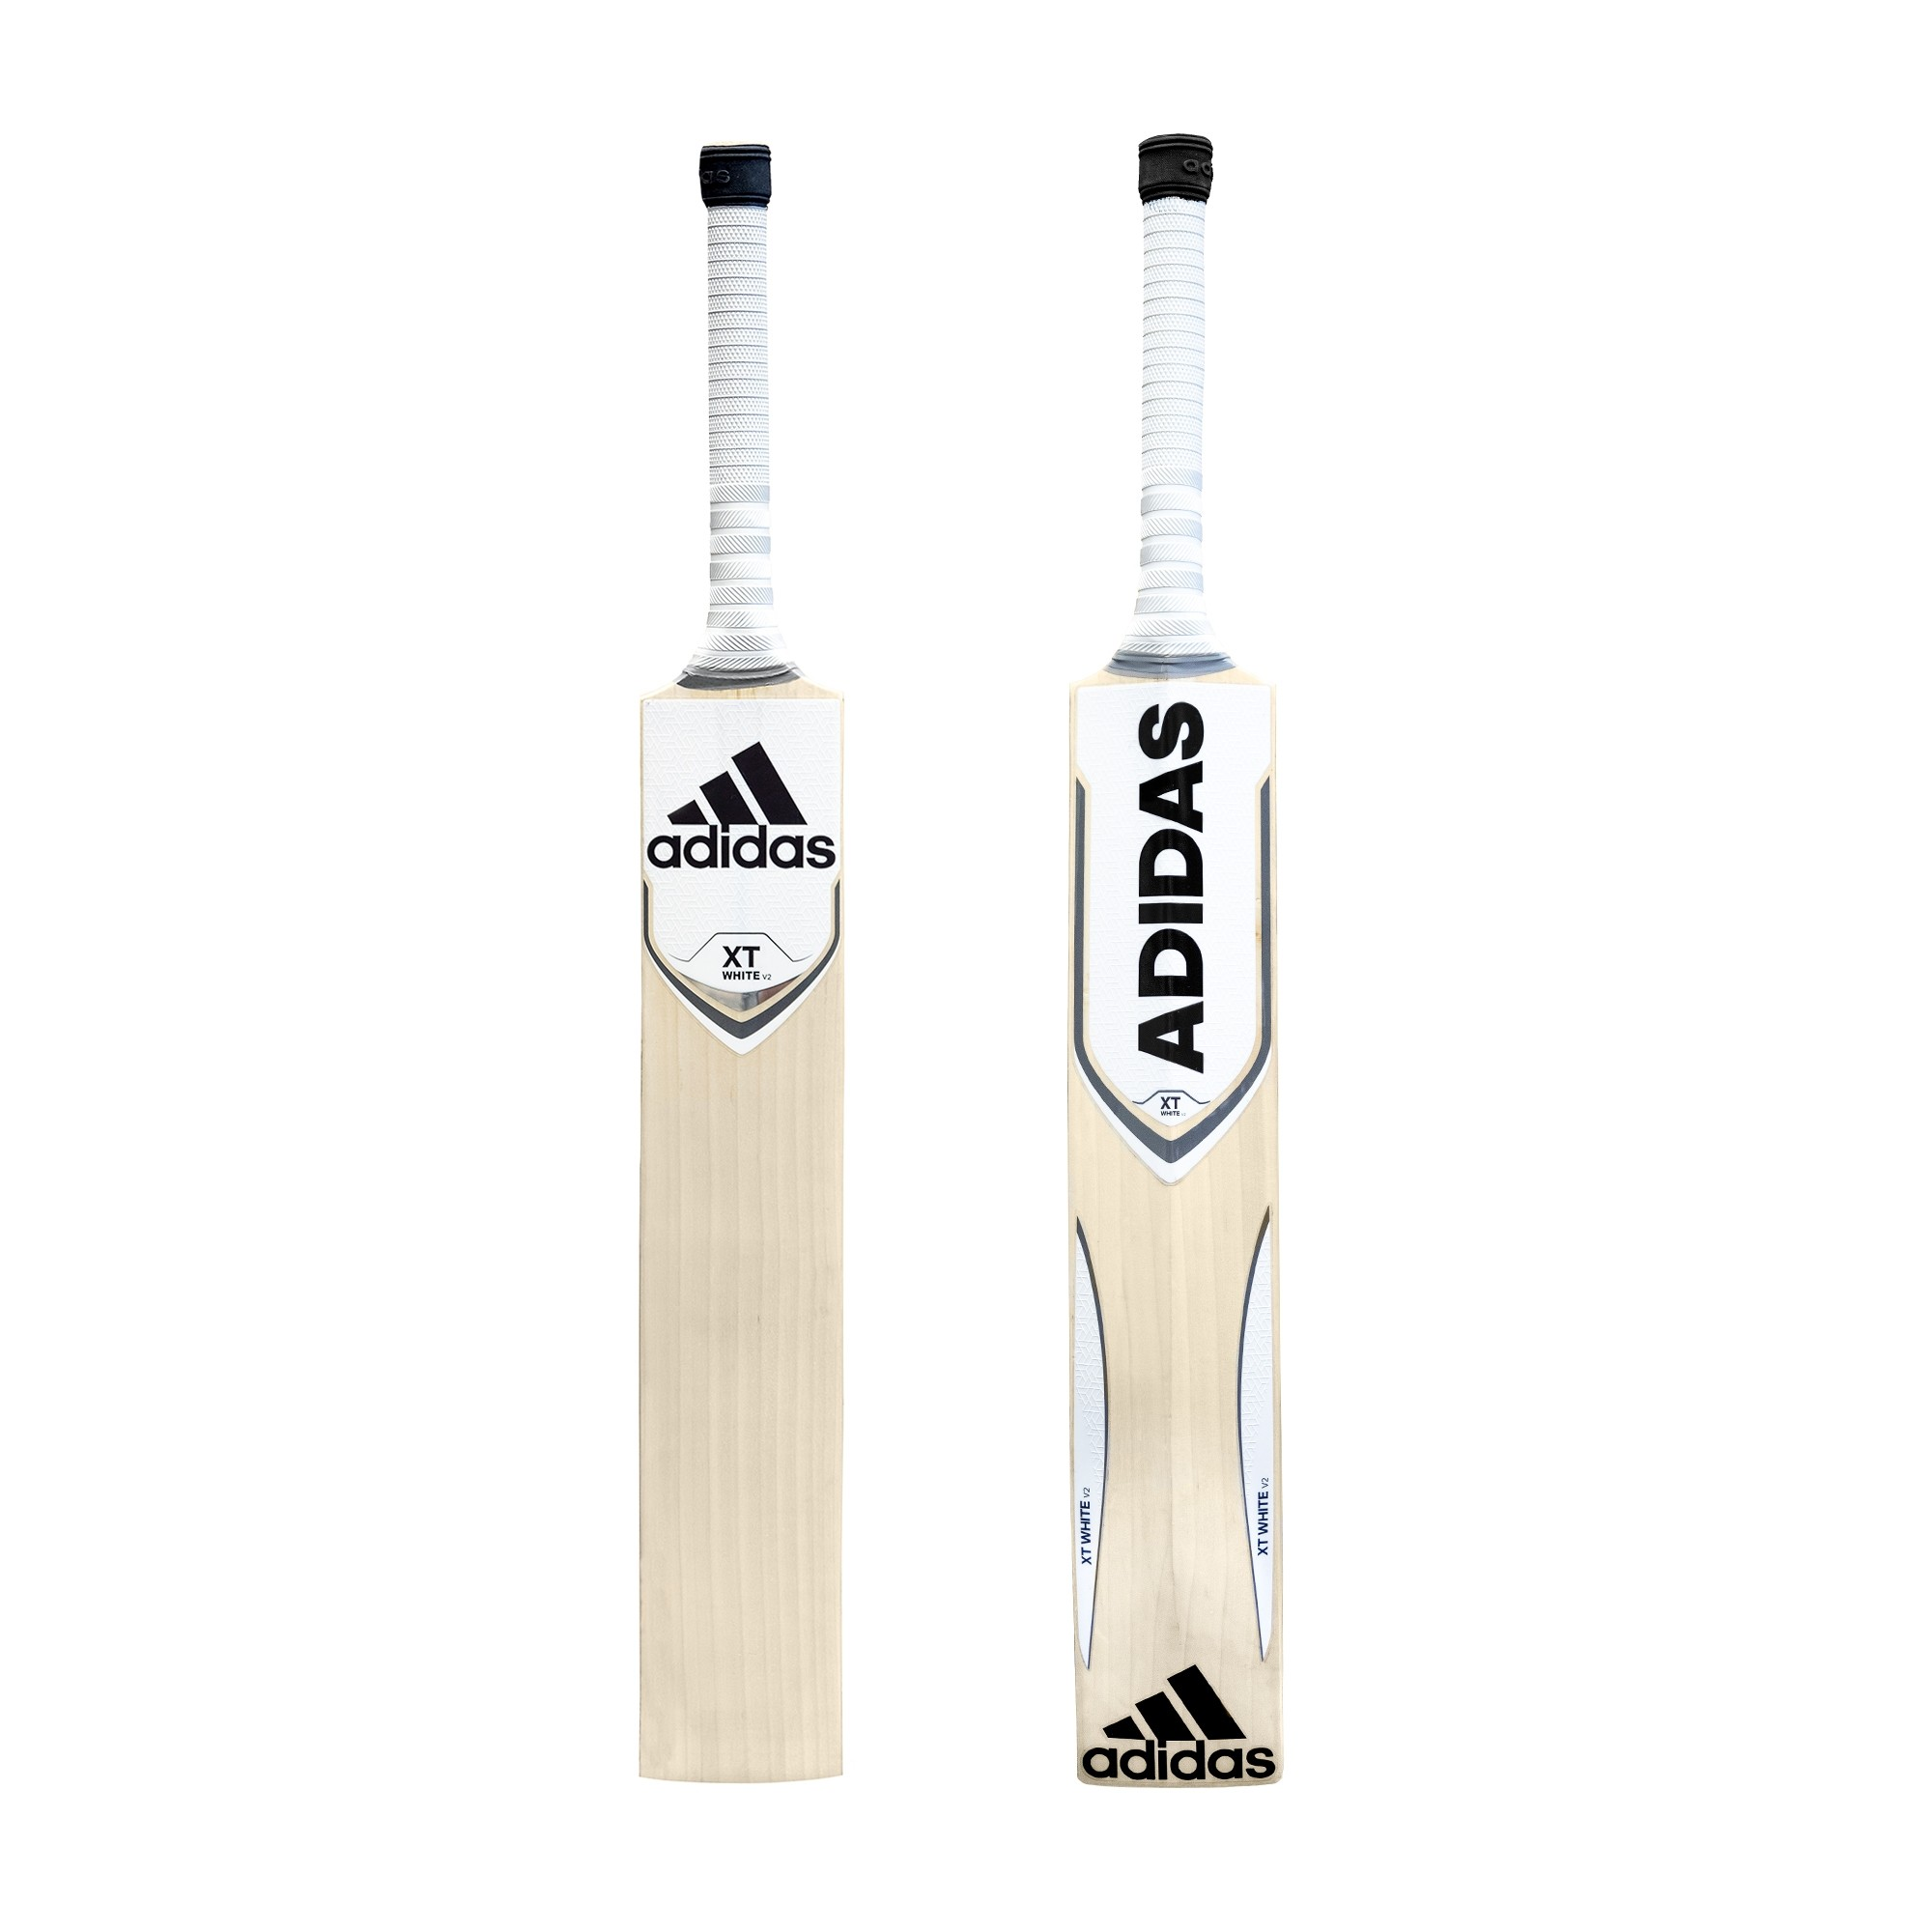 2019 Adidas XT White 3.0 Cricket Bat